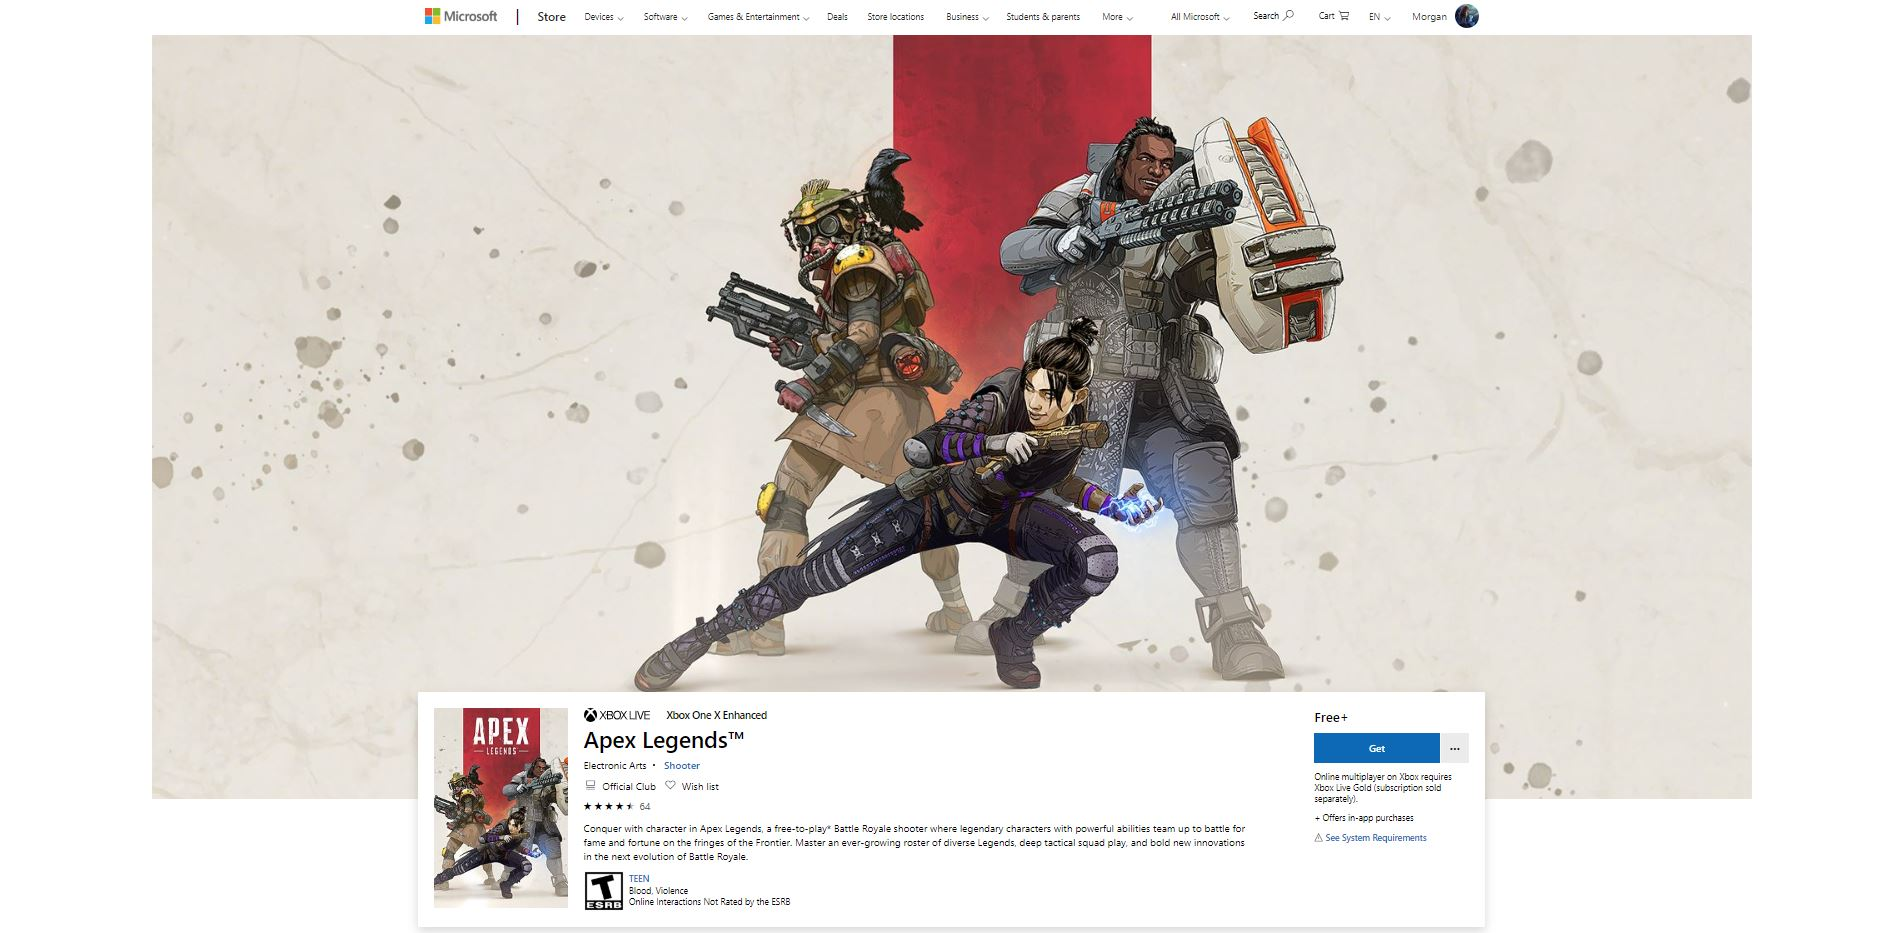 You can download Apex Legends via the Microsoft Store on PC or through your Xbox One.